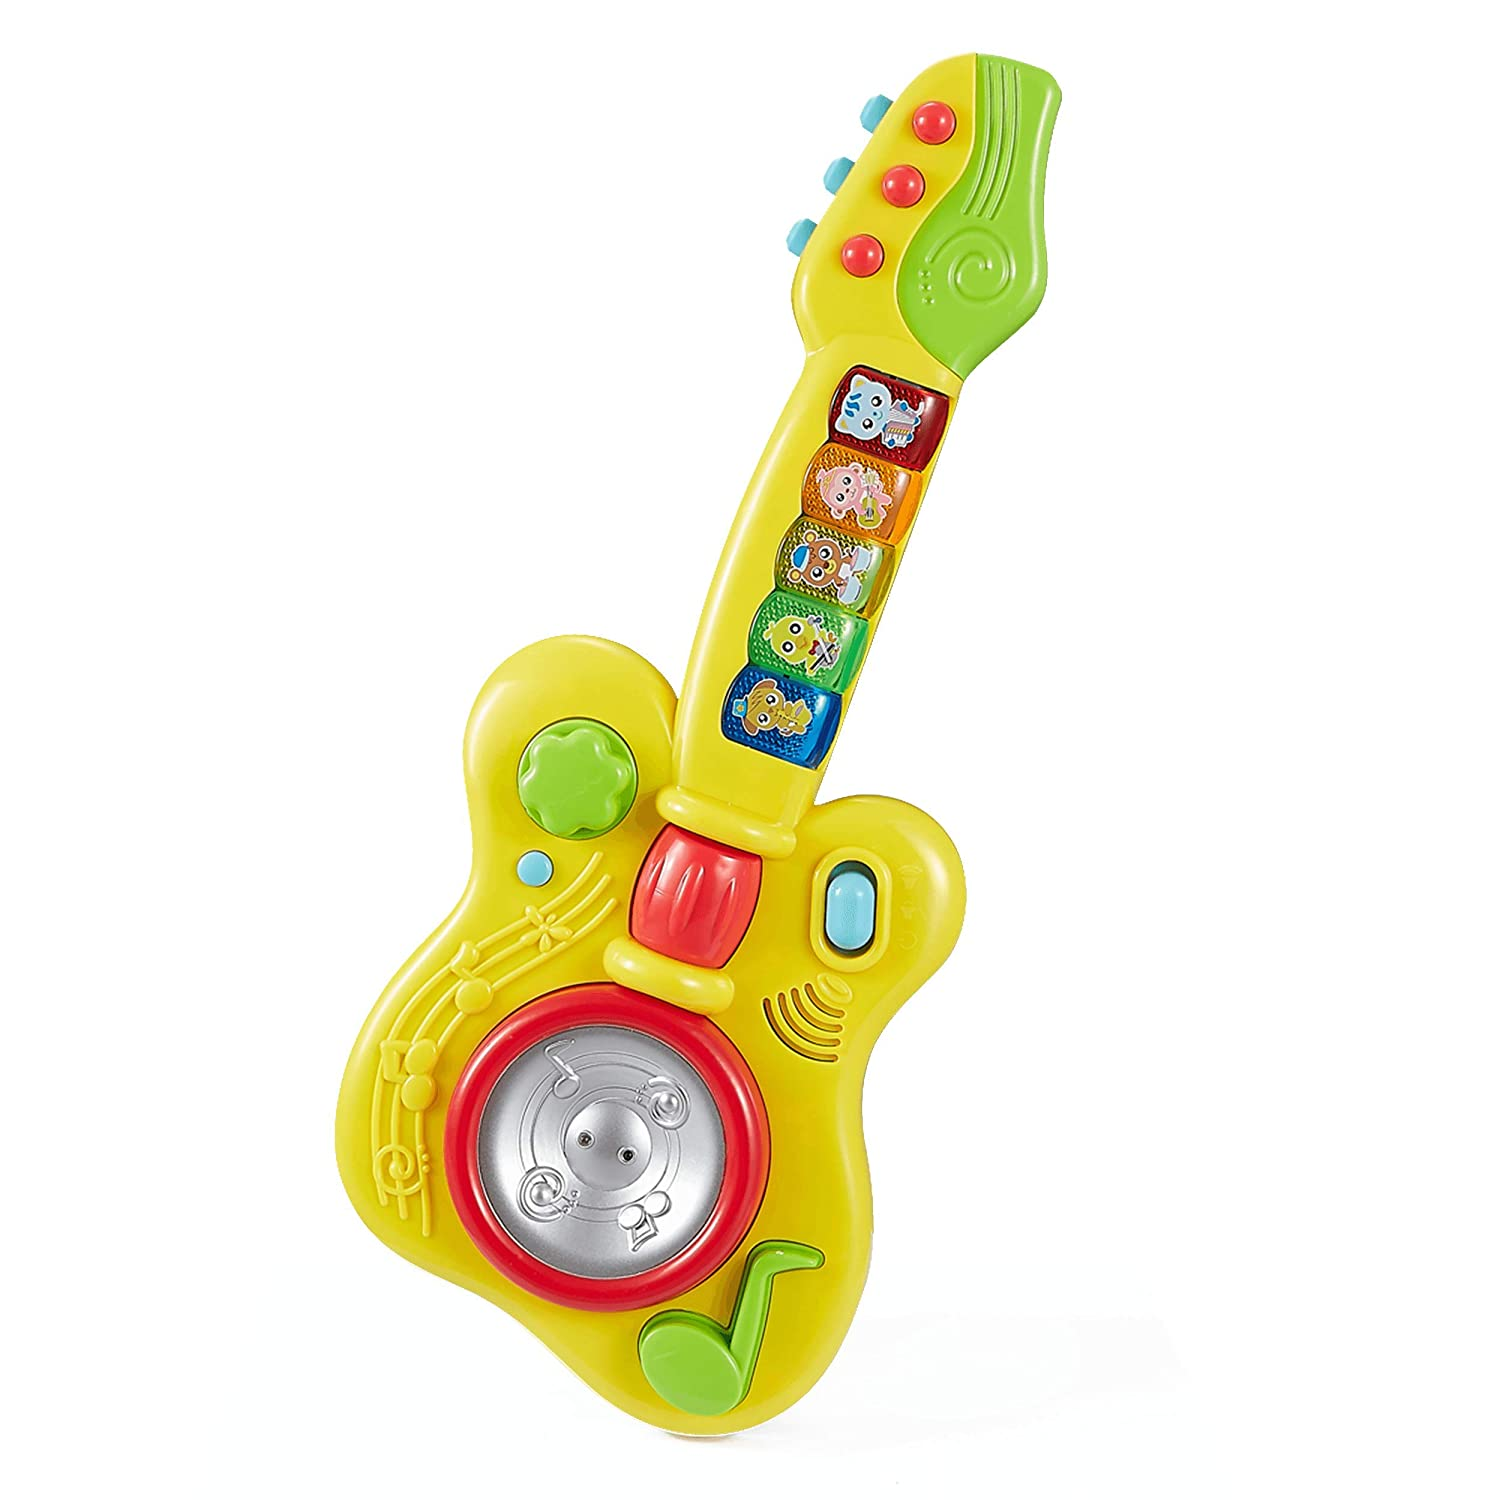 Think Gizmos Musical Guitar Toy for Toddlers TG729 - Musical Toy